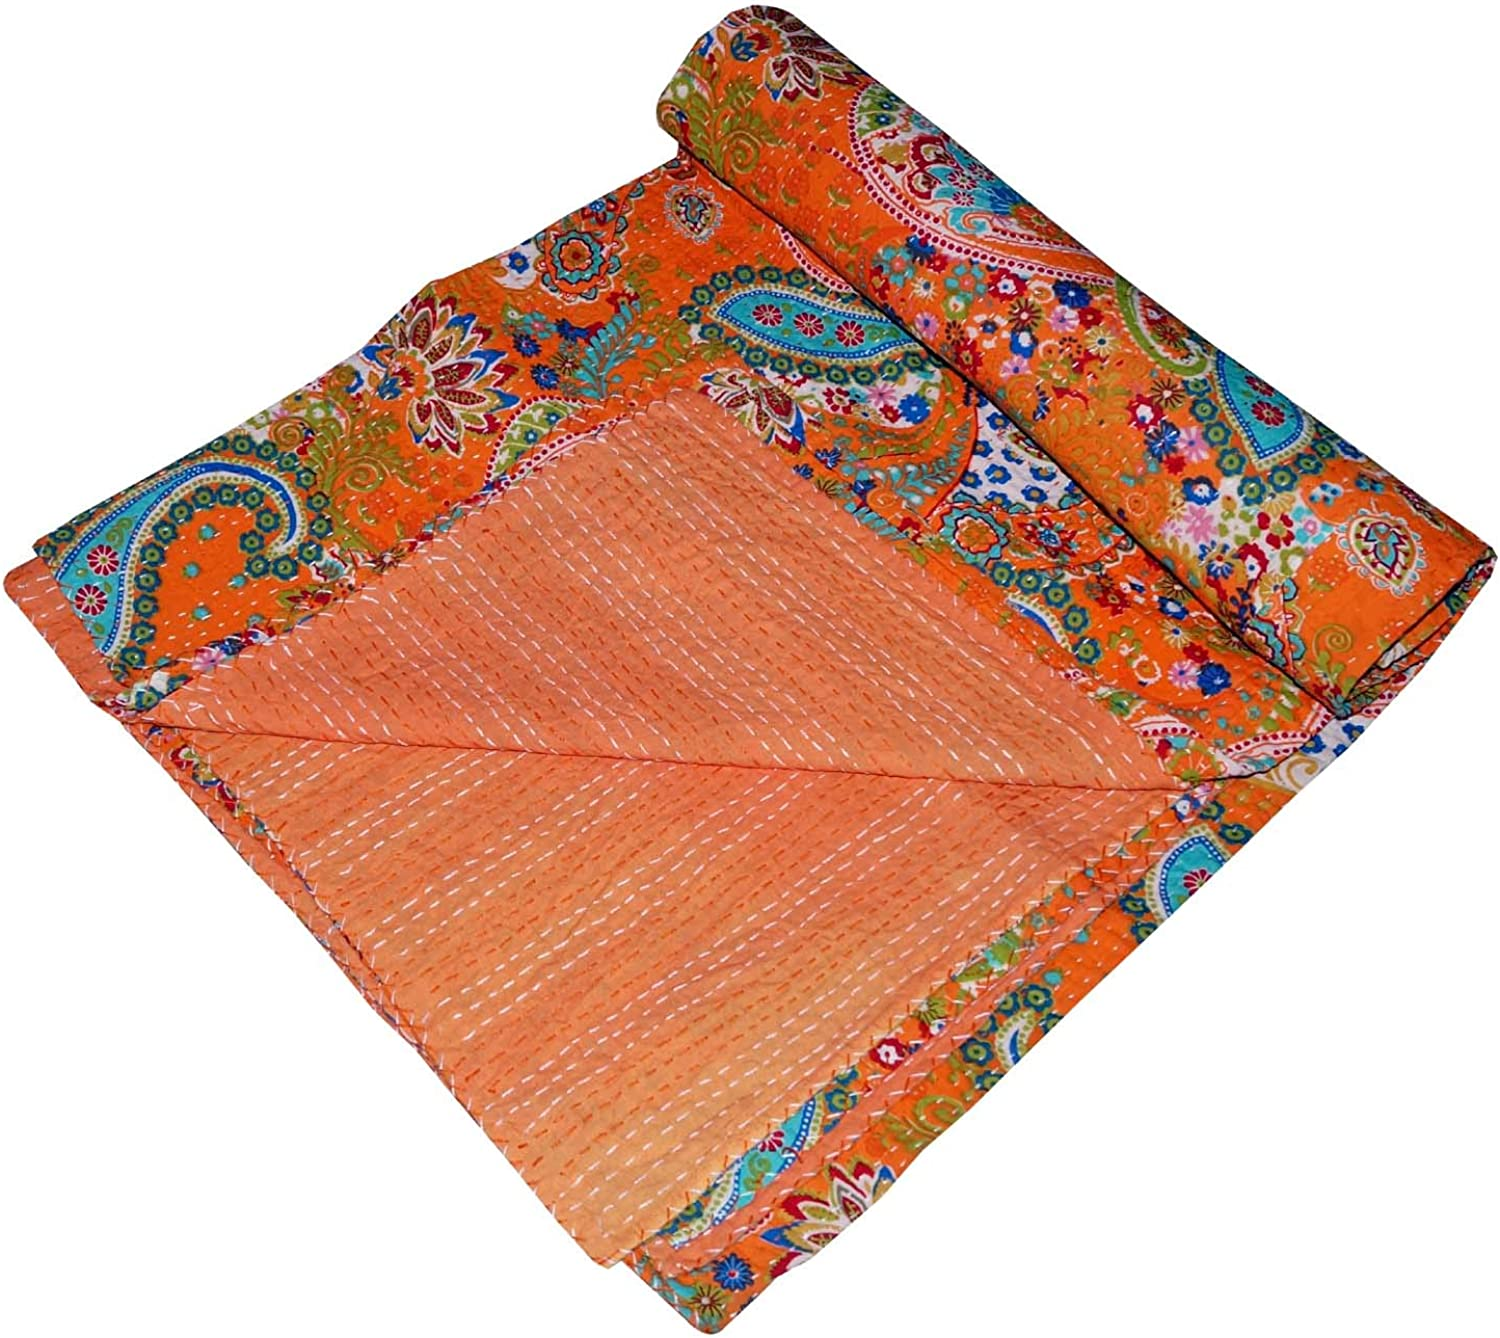 Navya Creations Indian Paisley Print Kantha Throw Blanket Quilt Queen Bohemian Cotton Bedspread Bed Cover